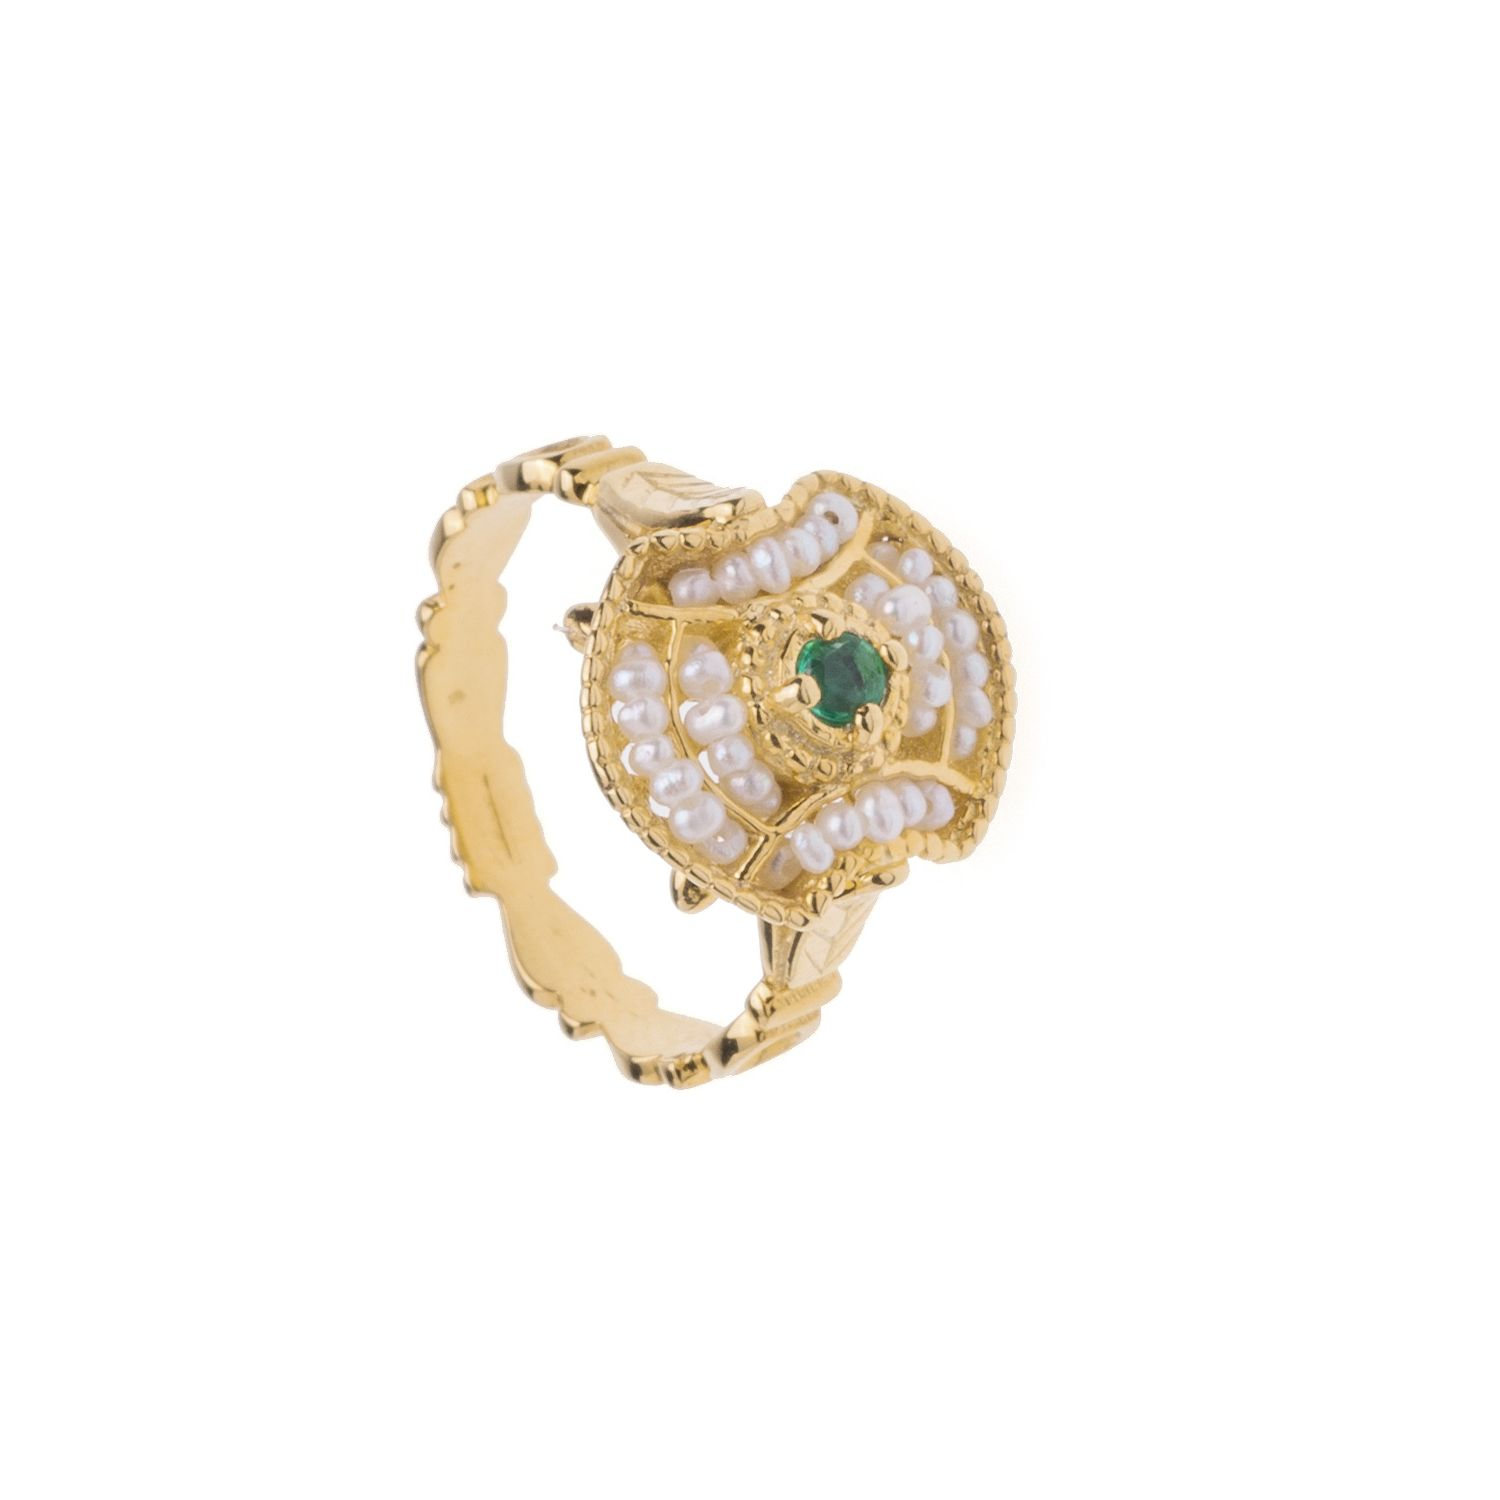 Gold Ring with Pearls and central Stone (14245)